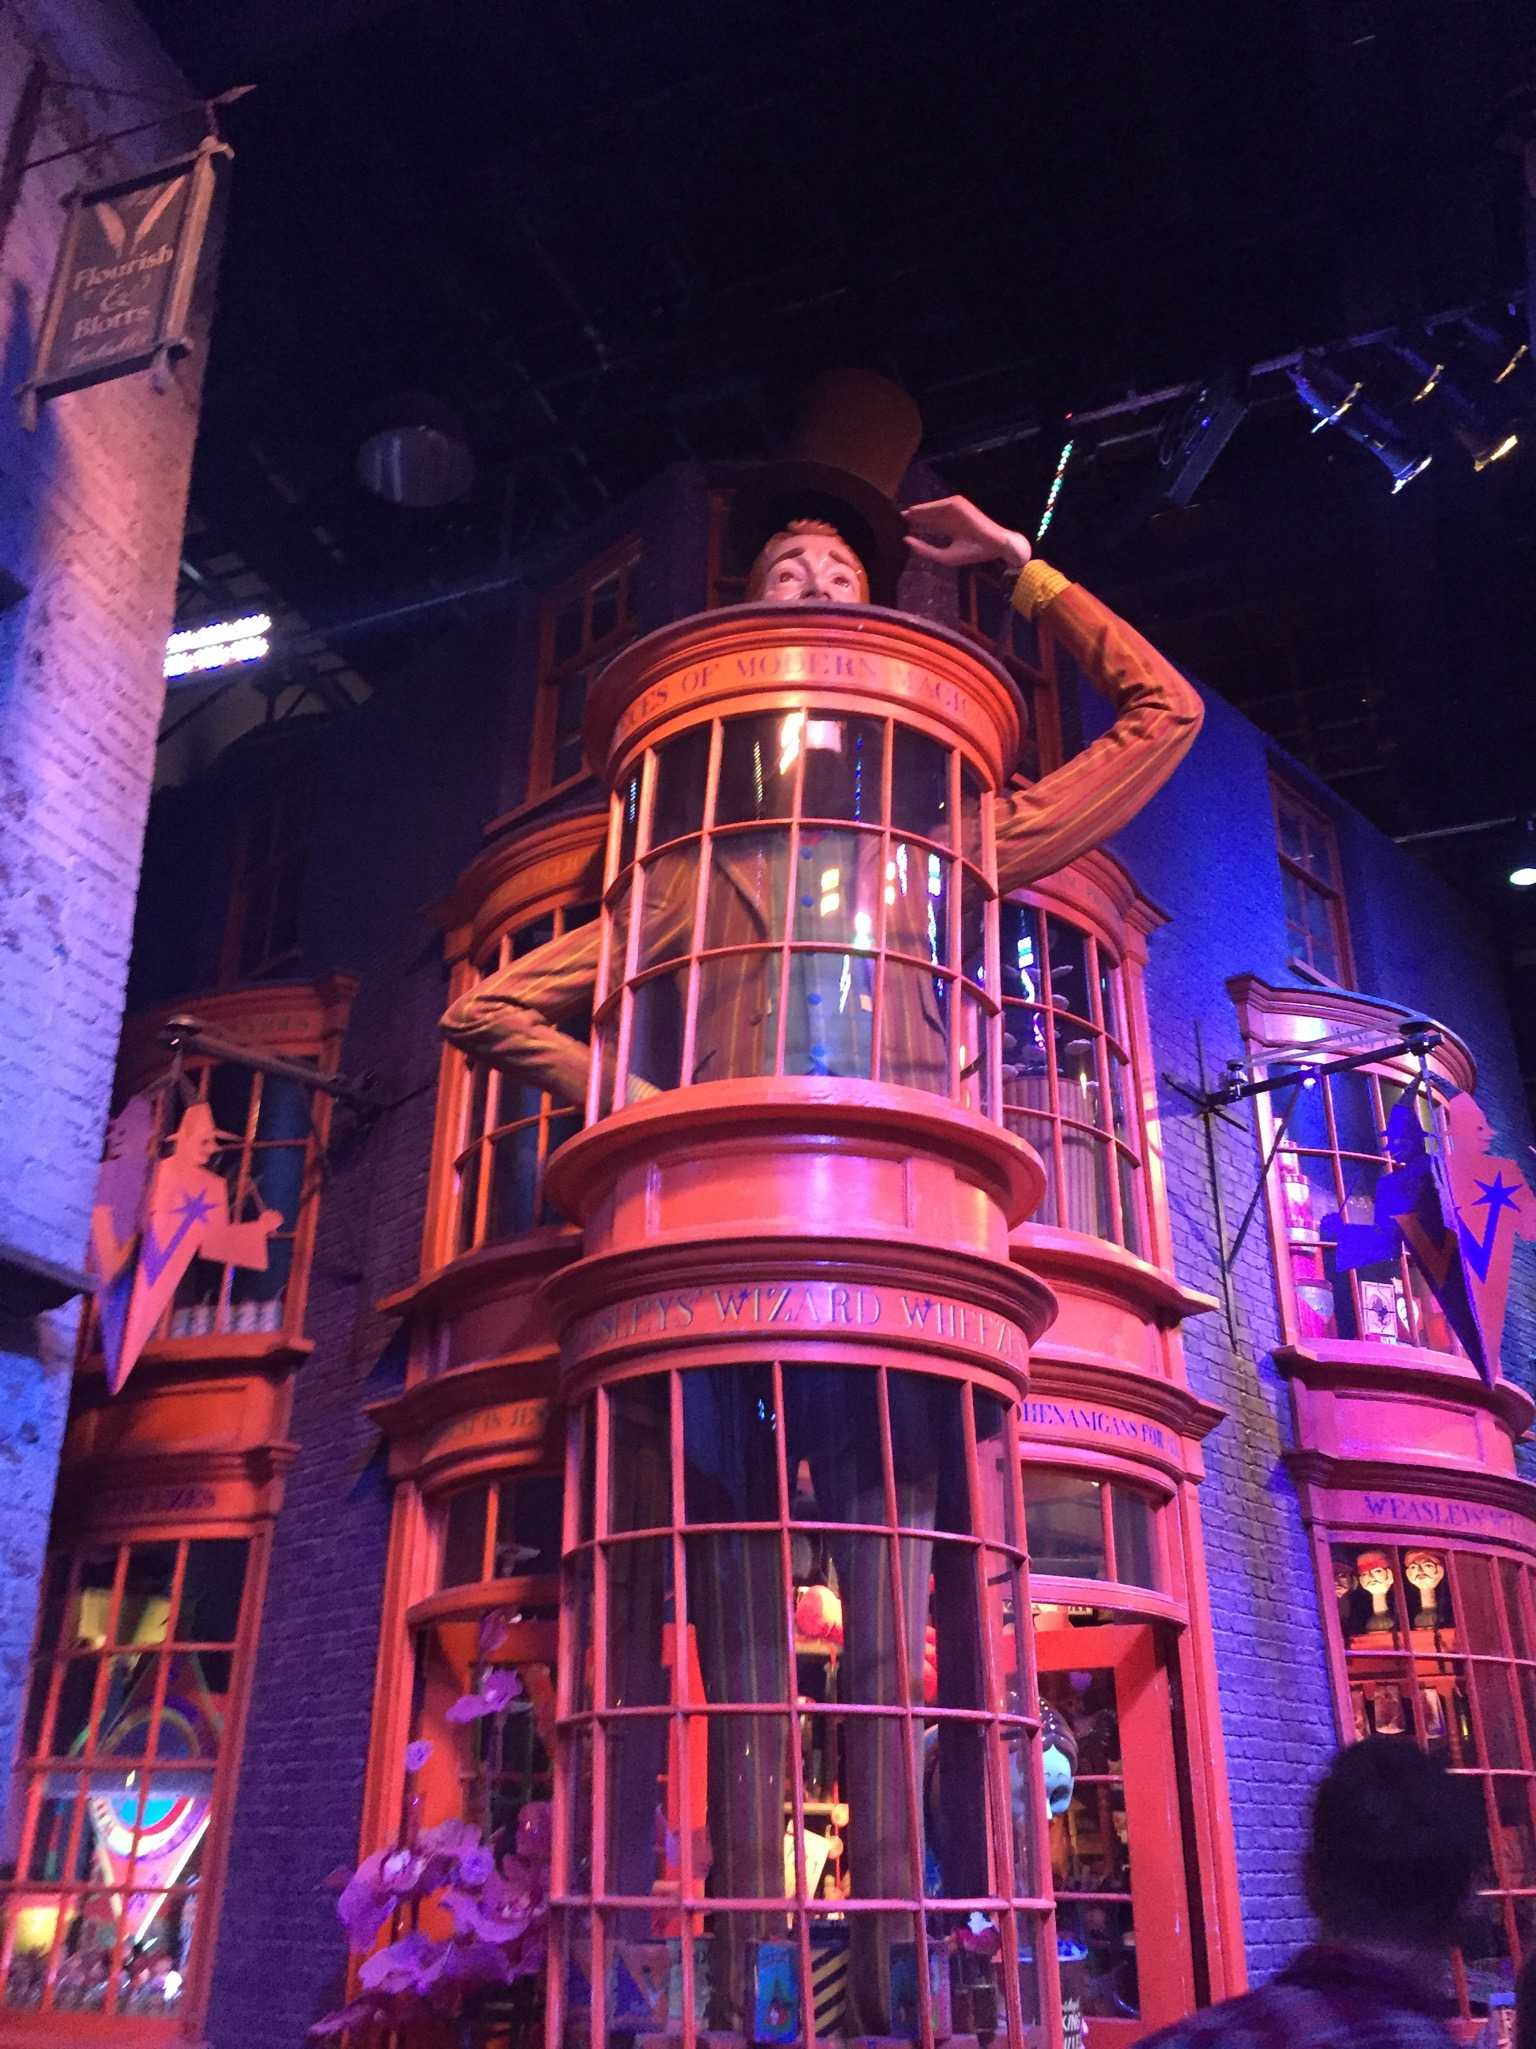 JOKE'S ON YOU: If you want to prank your new classmates, then Weasley's Wizard Wheezes is the place to satisfy your pranking desires.